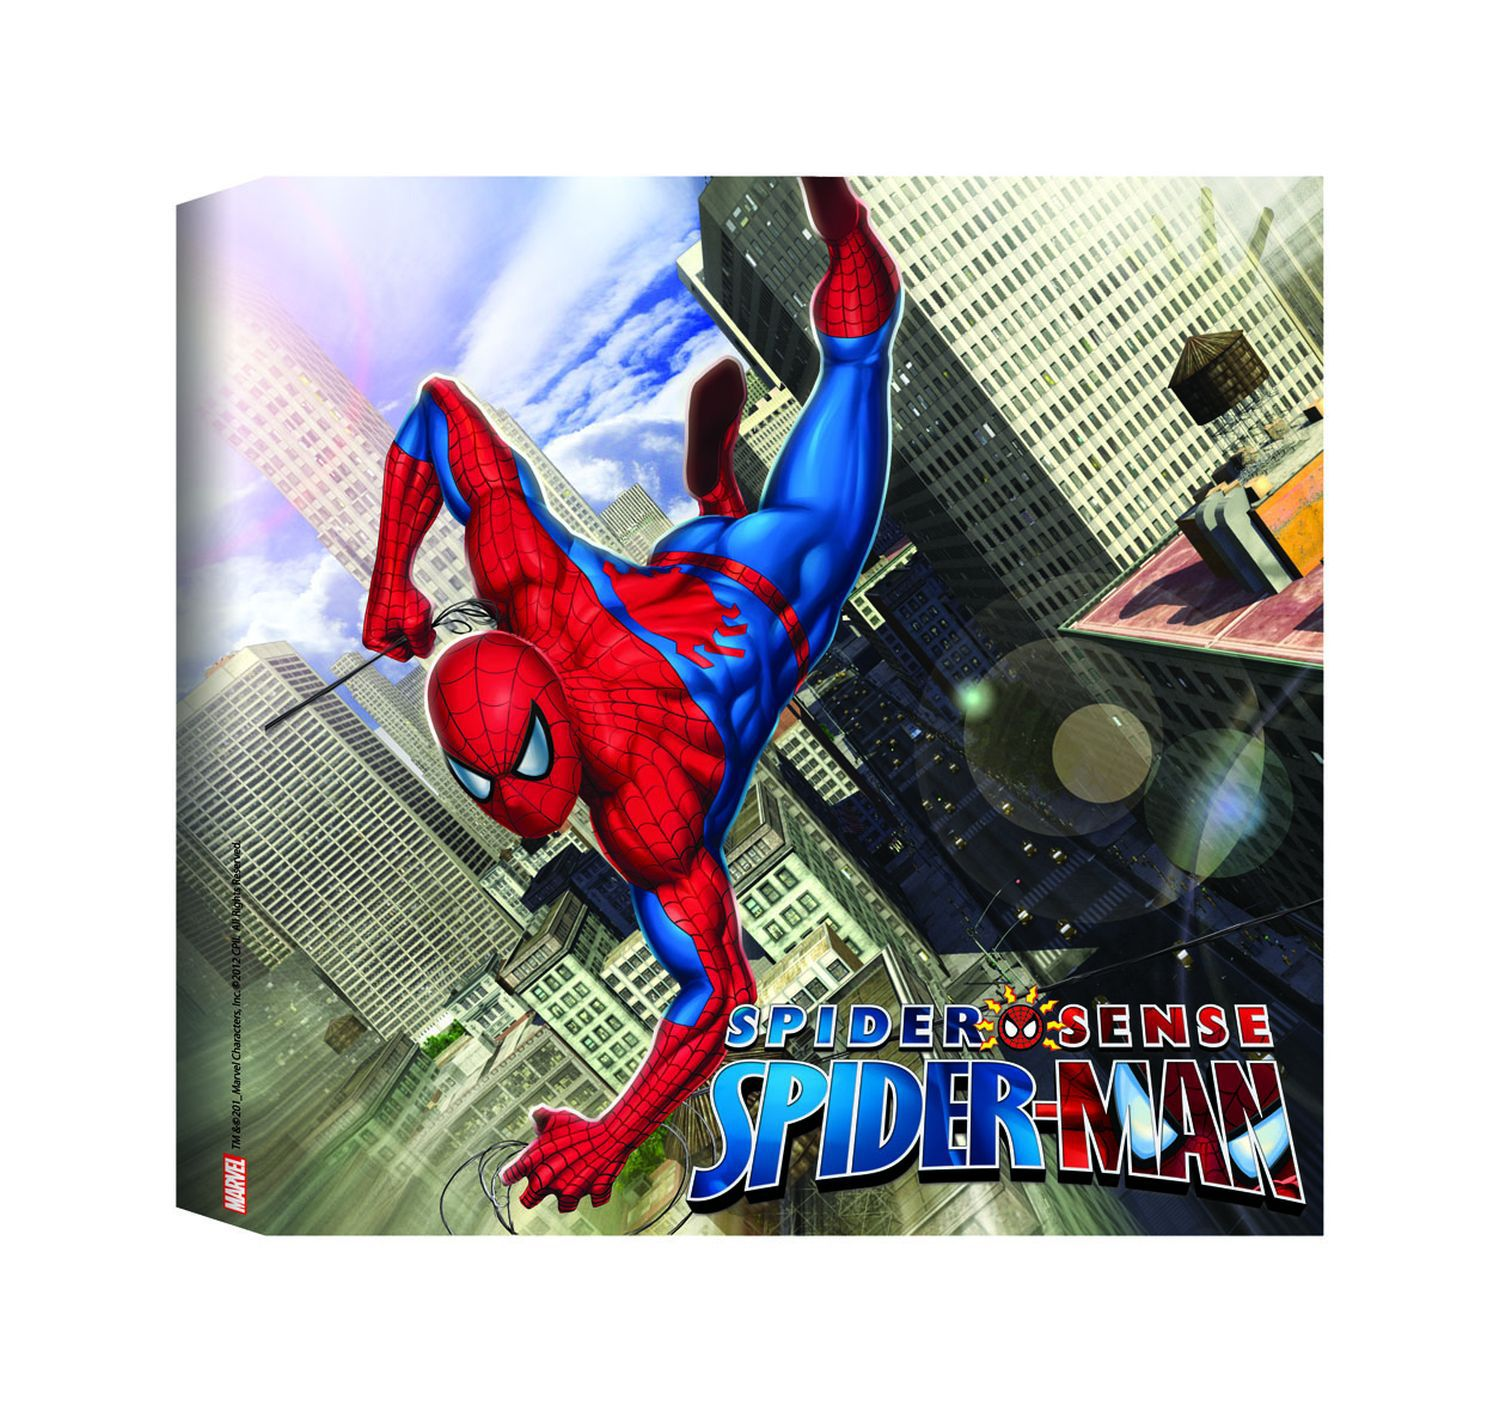 Spiderman Printed Canvas (30x30cm)